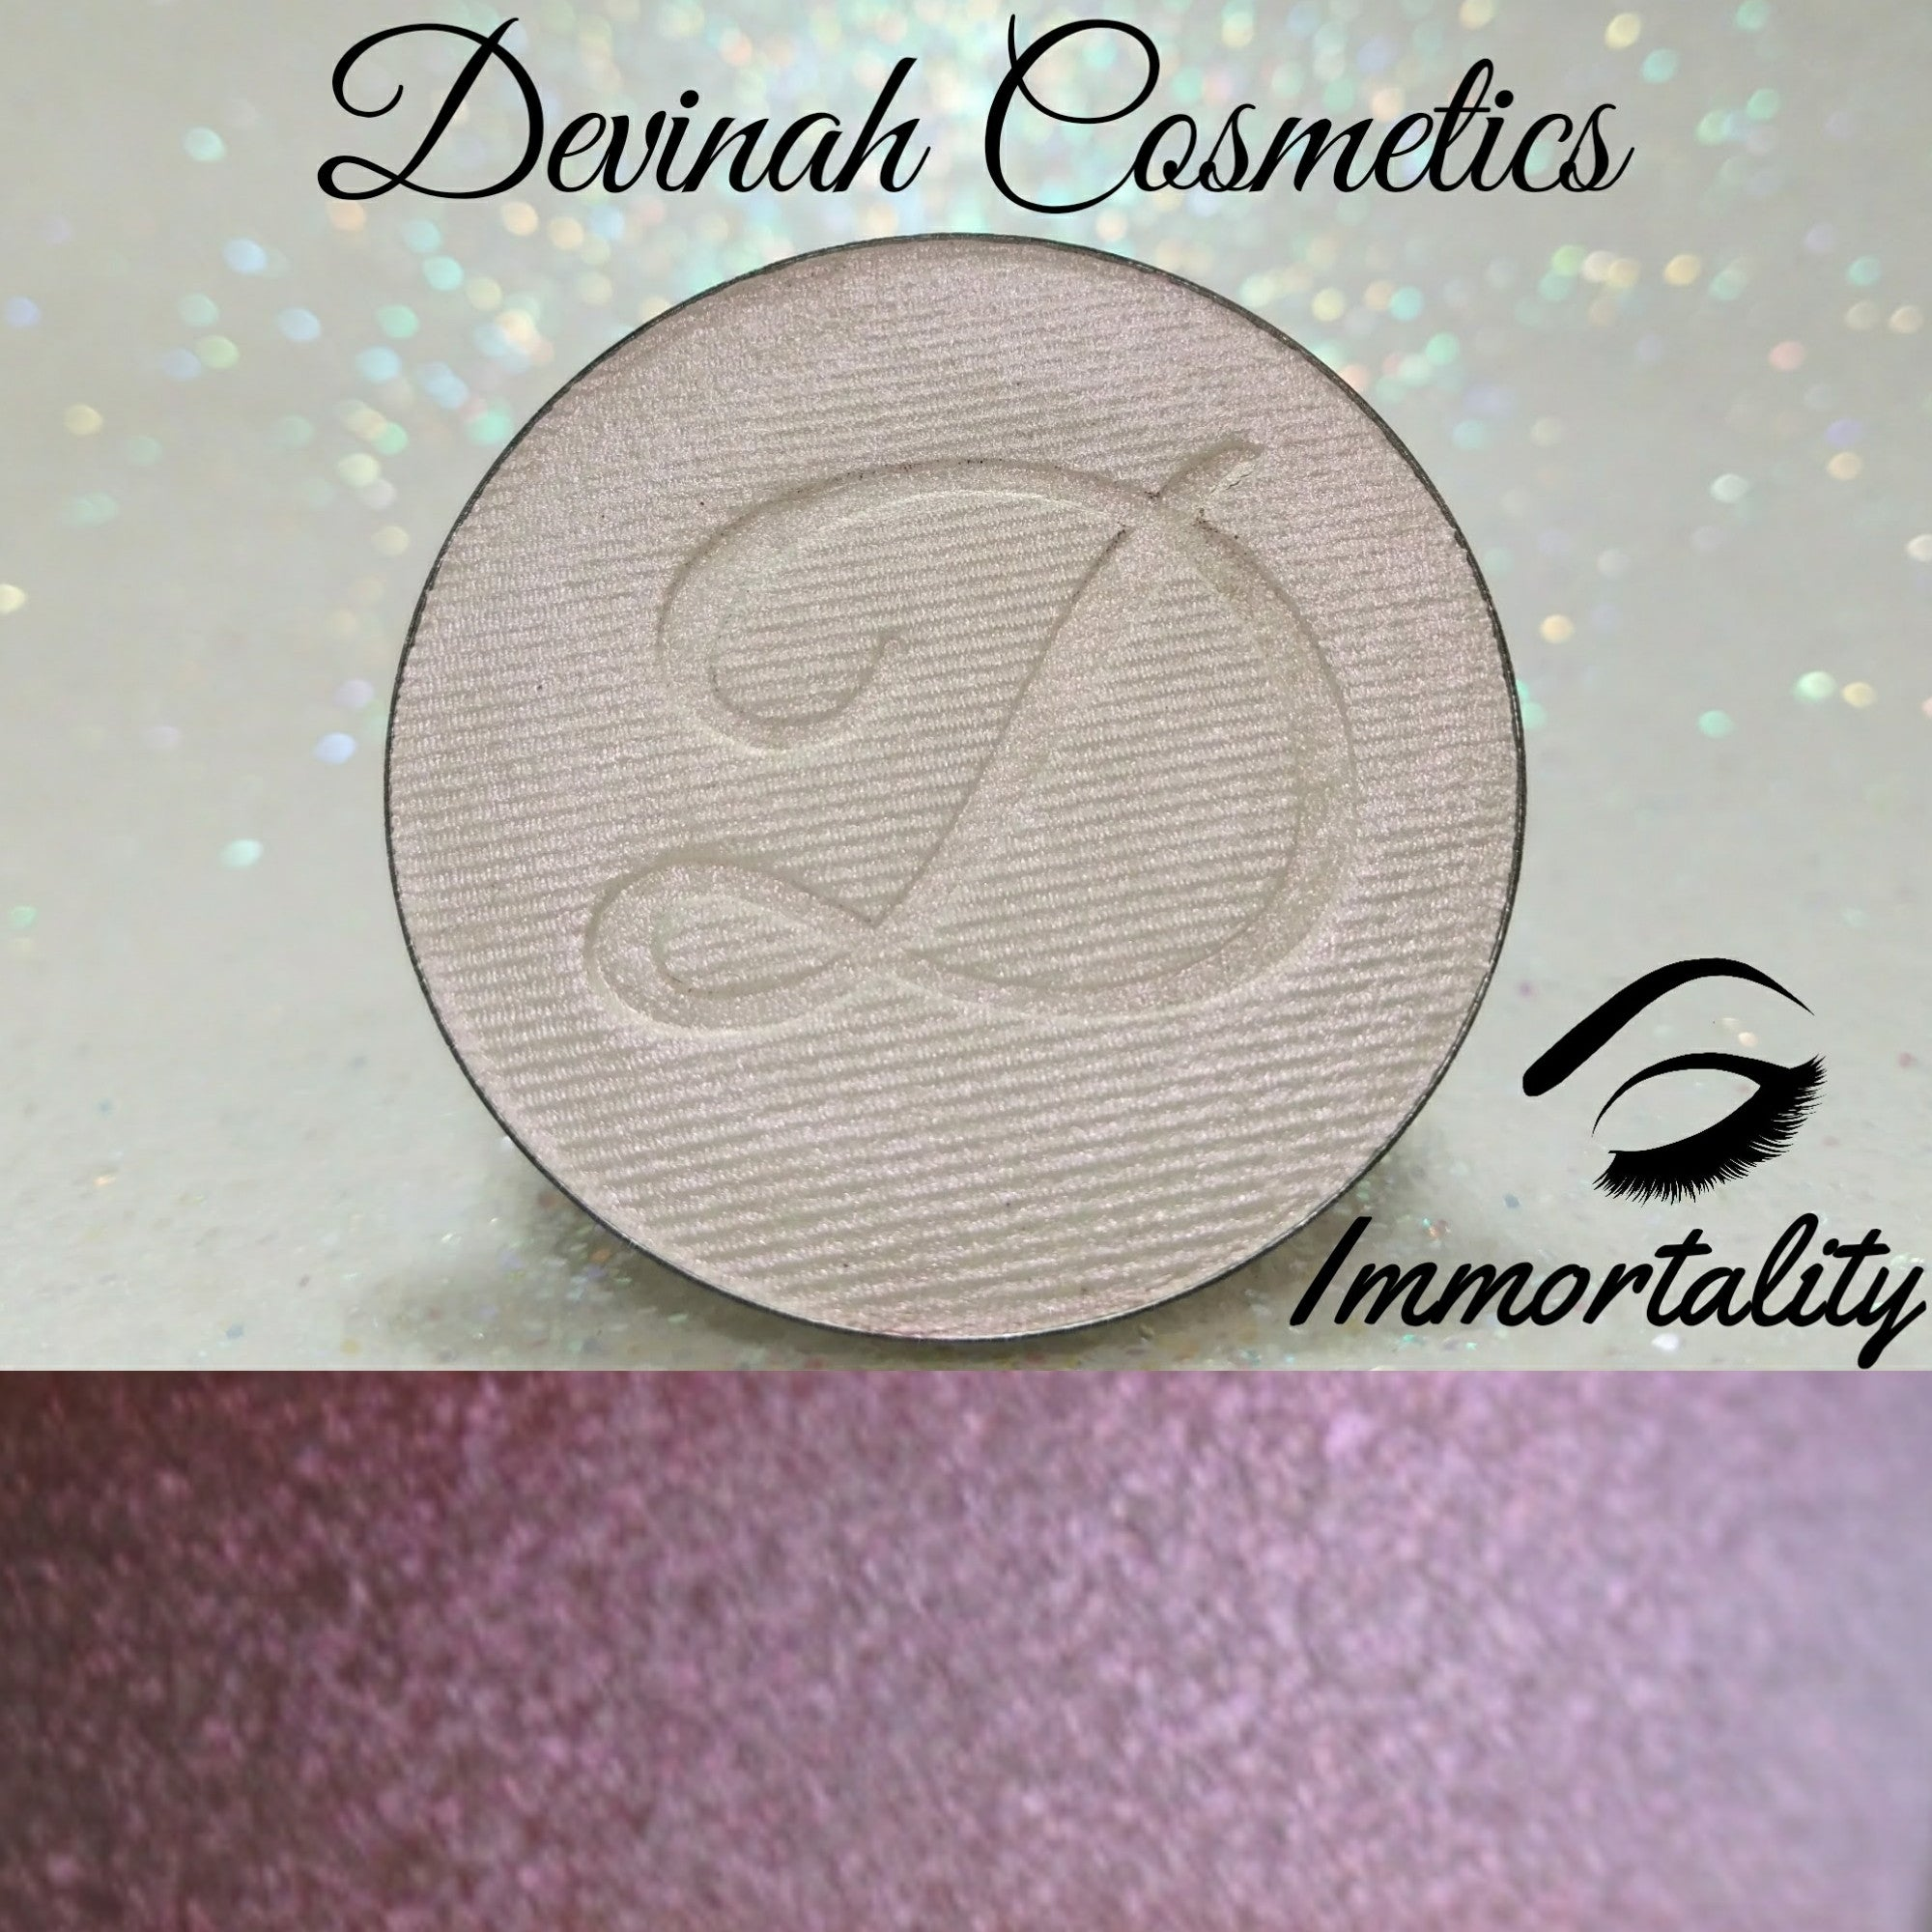 IMMORTALITY Iridescent Face and Body Highlighter